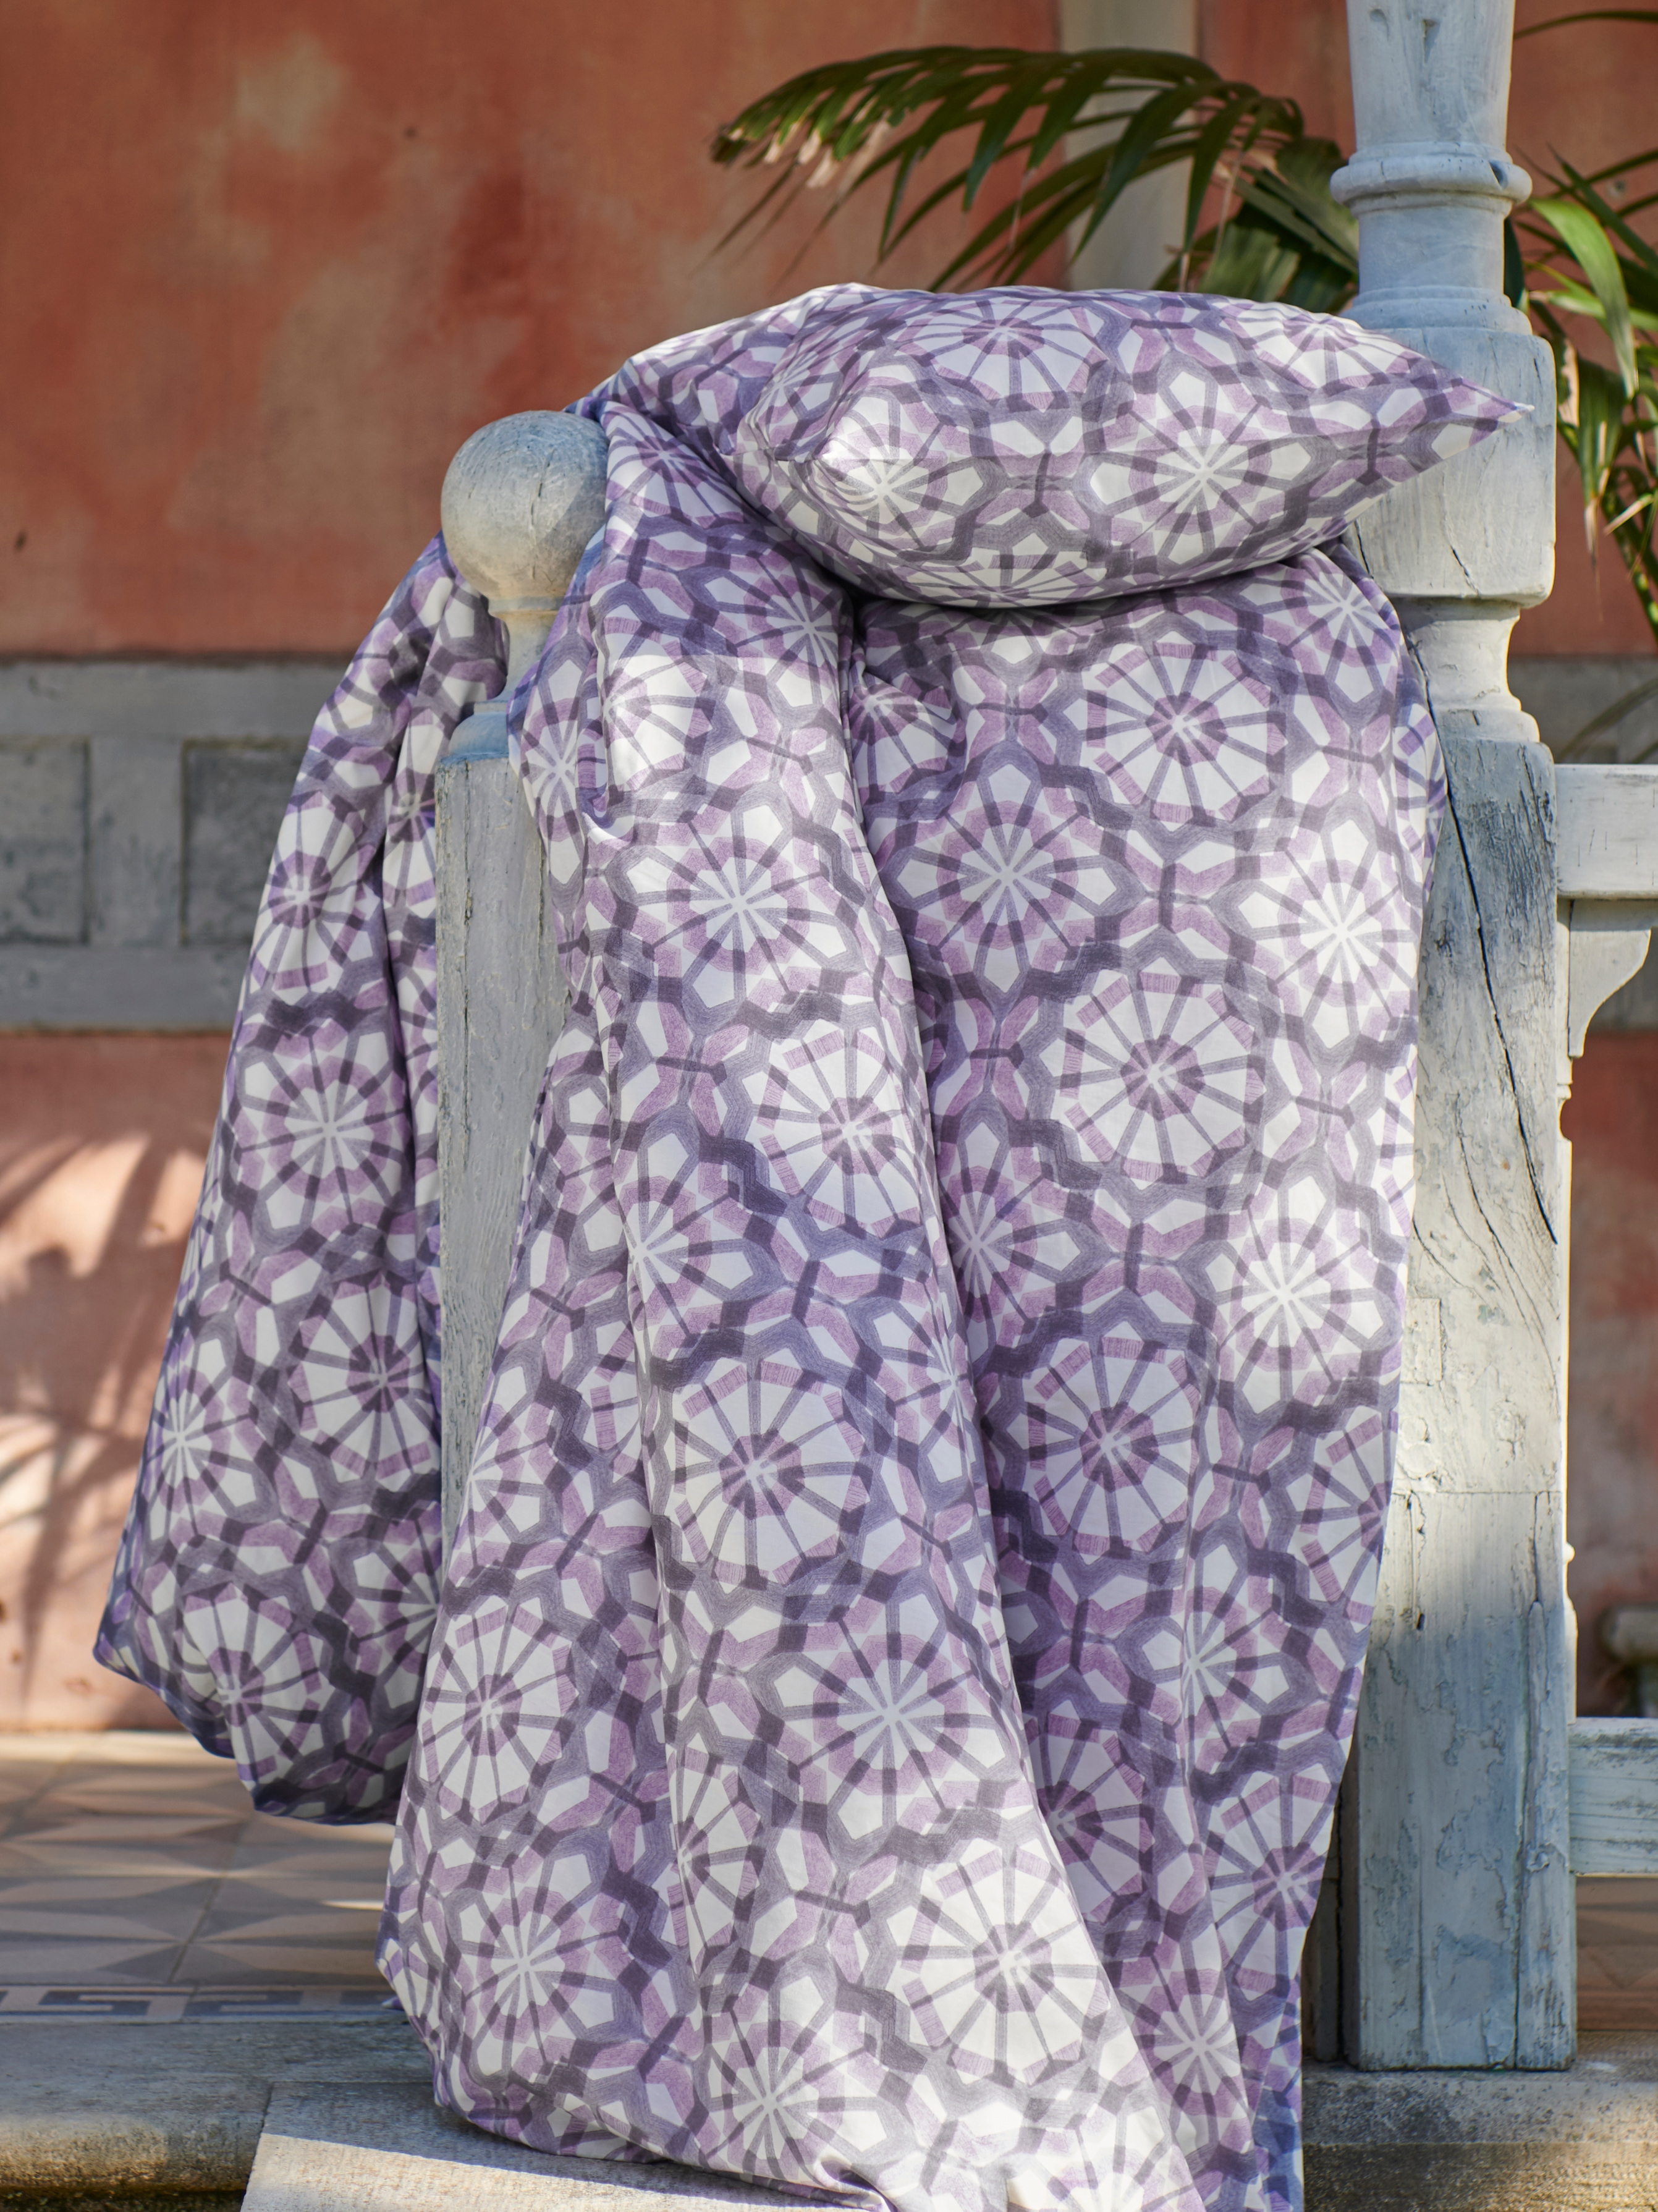 VATTENFRÄNE quilt cover and pillowcase set with a starry-flowered, geometric pattern in purple and white is on a porch rail.